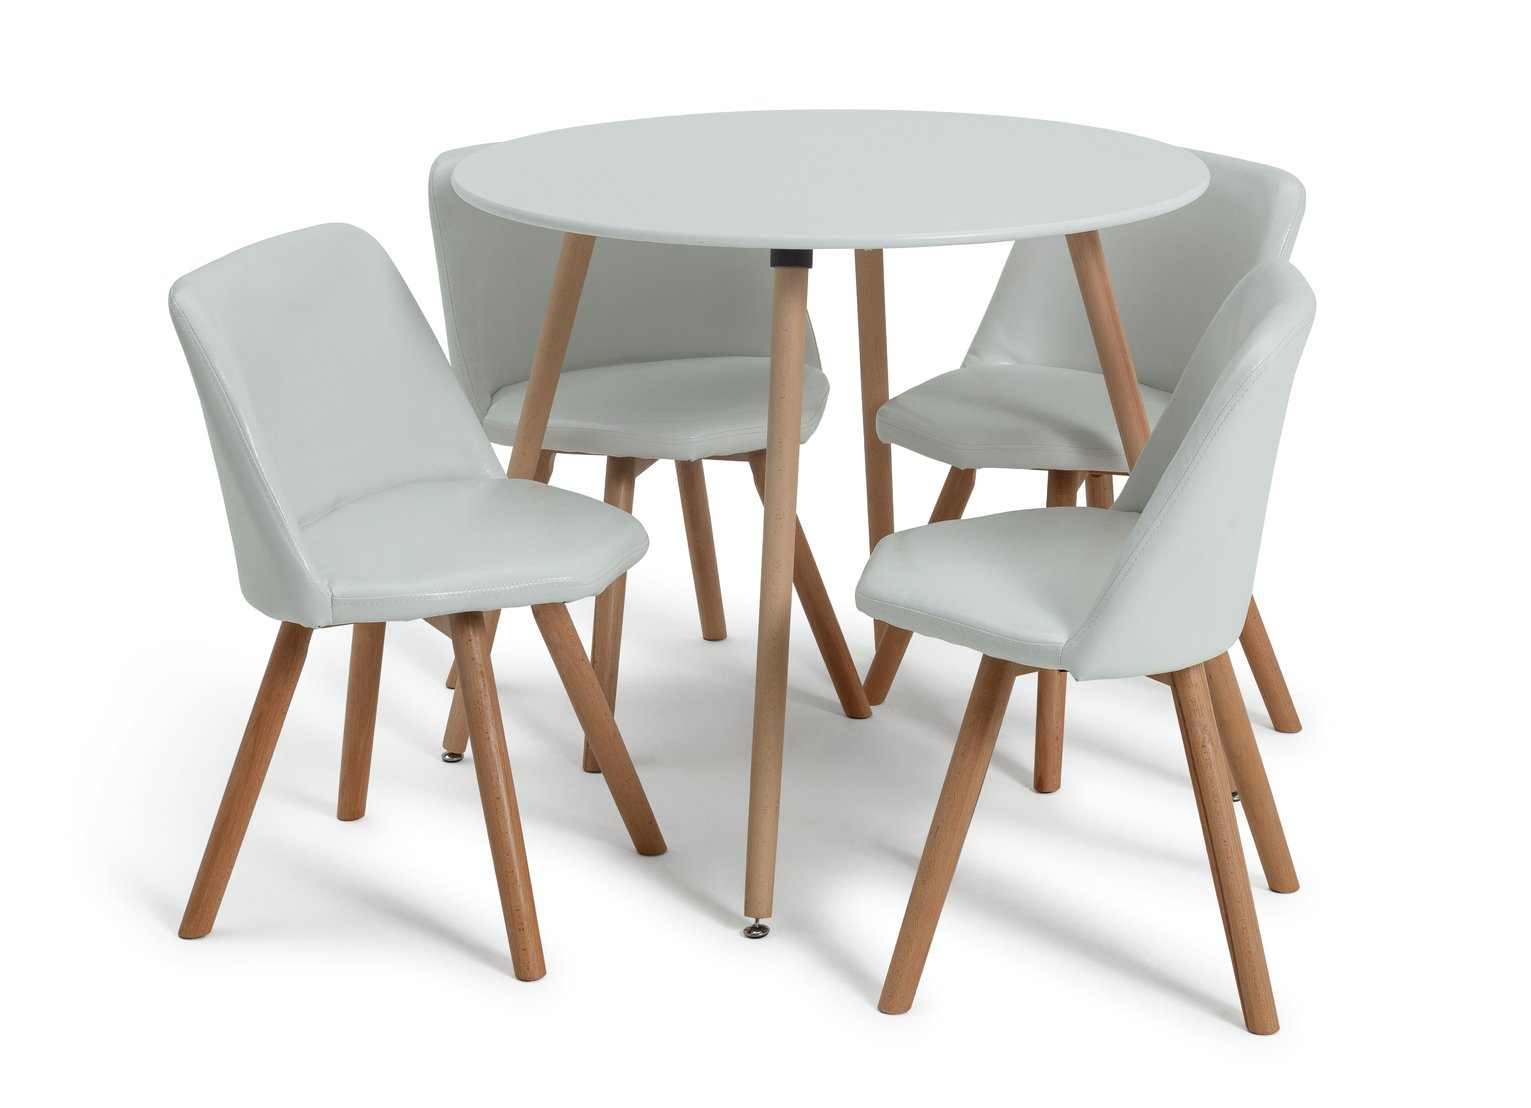 drop leaf table and chairs argos telescopic camping buy hygena amparo oak effect dining & 4 - cream at argos.co.uk your online shop ...